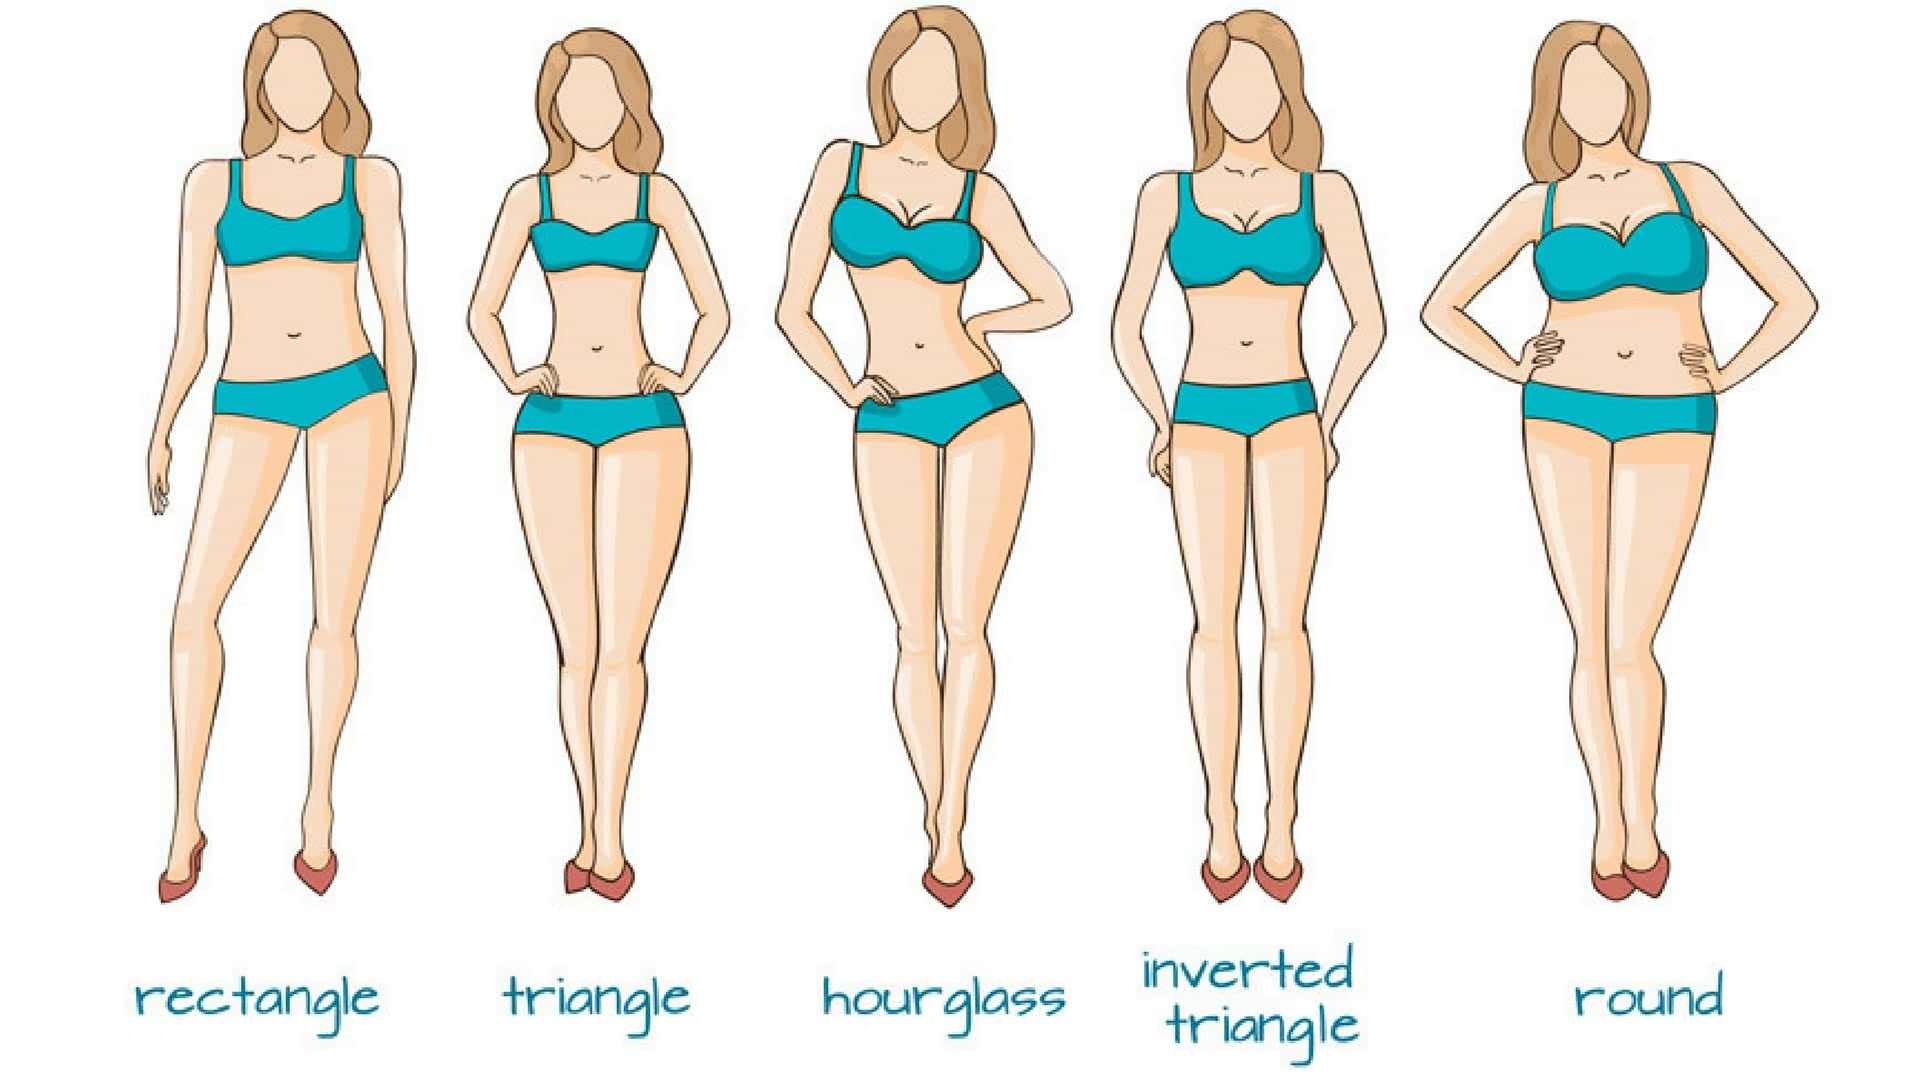 different body types - hourglass, apple, rectangle, triangle, and inverted triangle